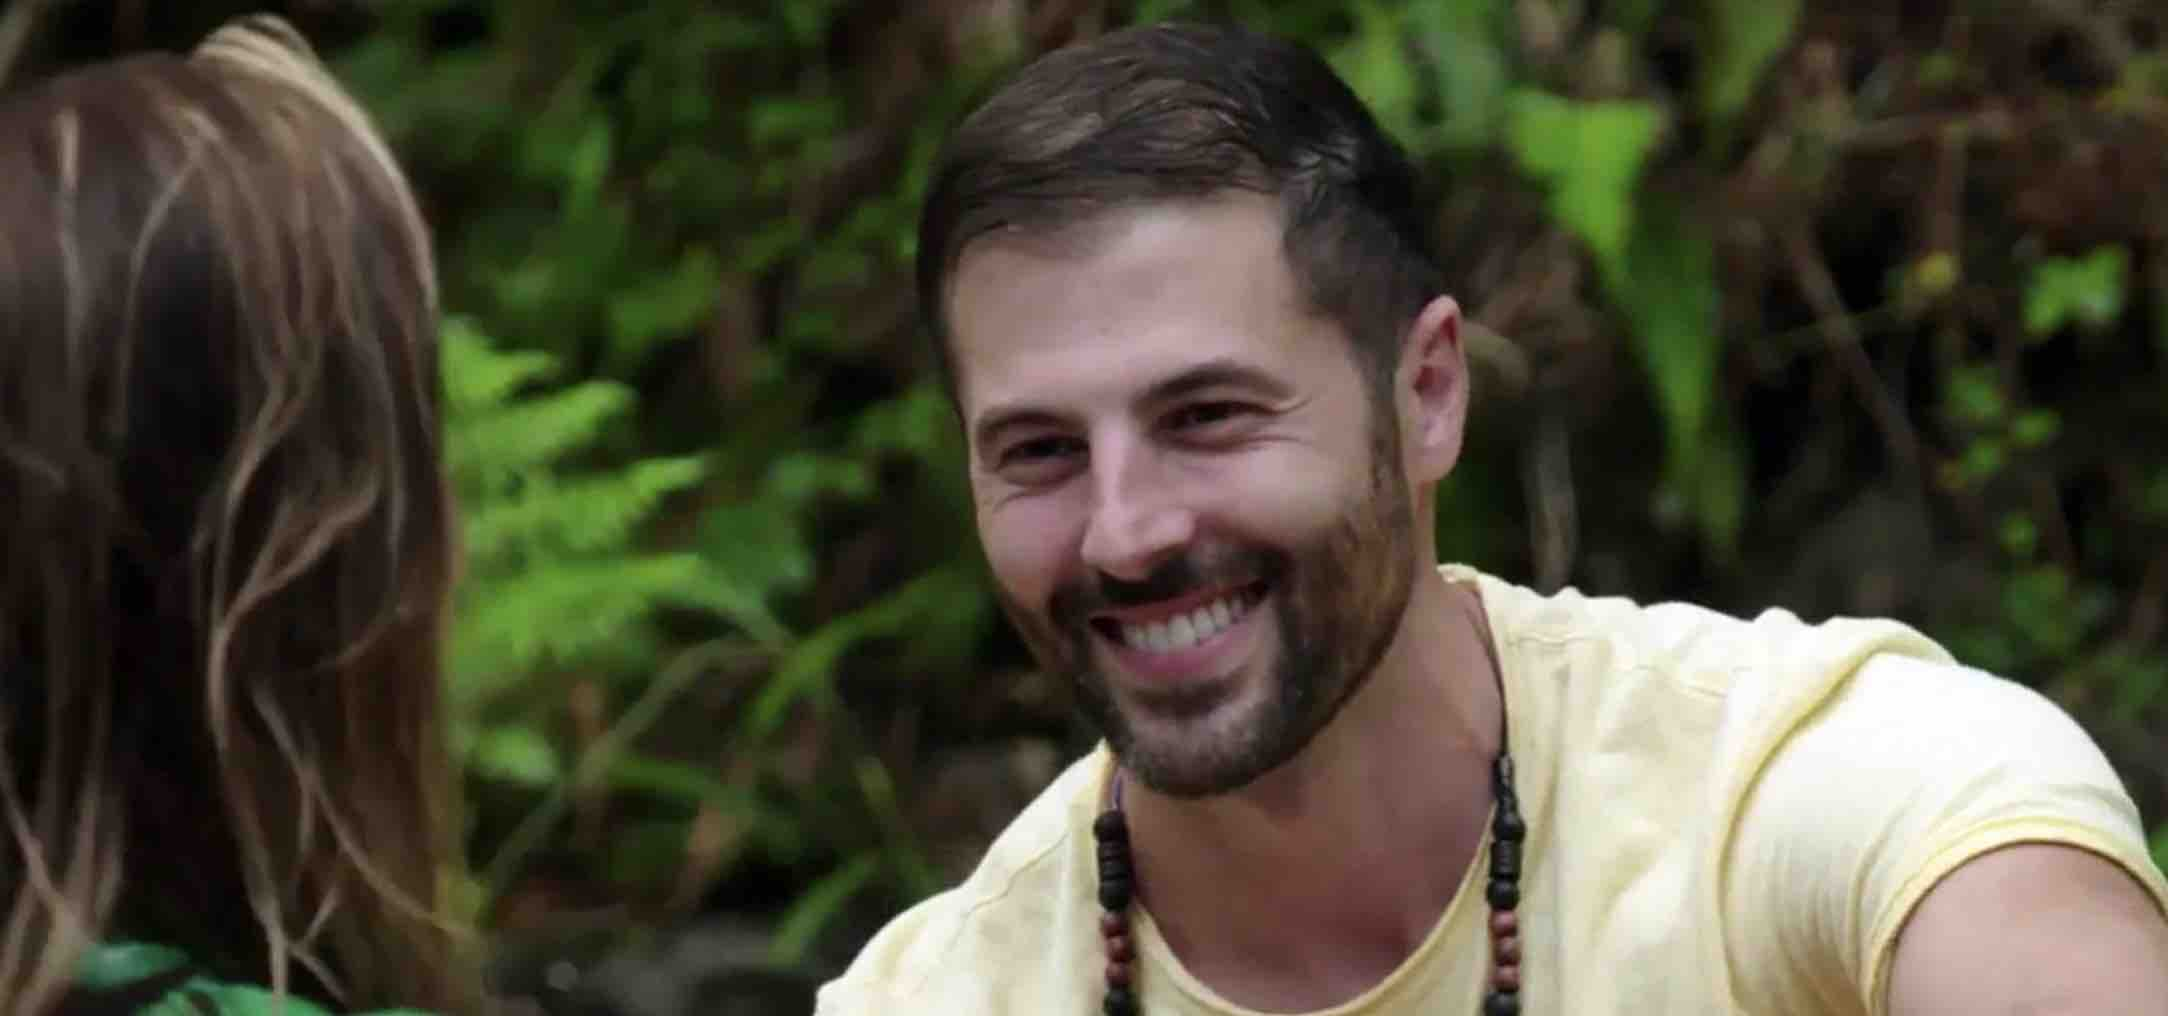 Temptation Island Season 3 Episode Recap: No Regrets